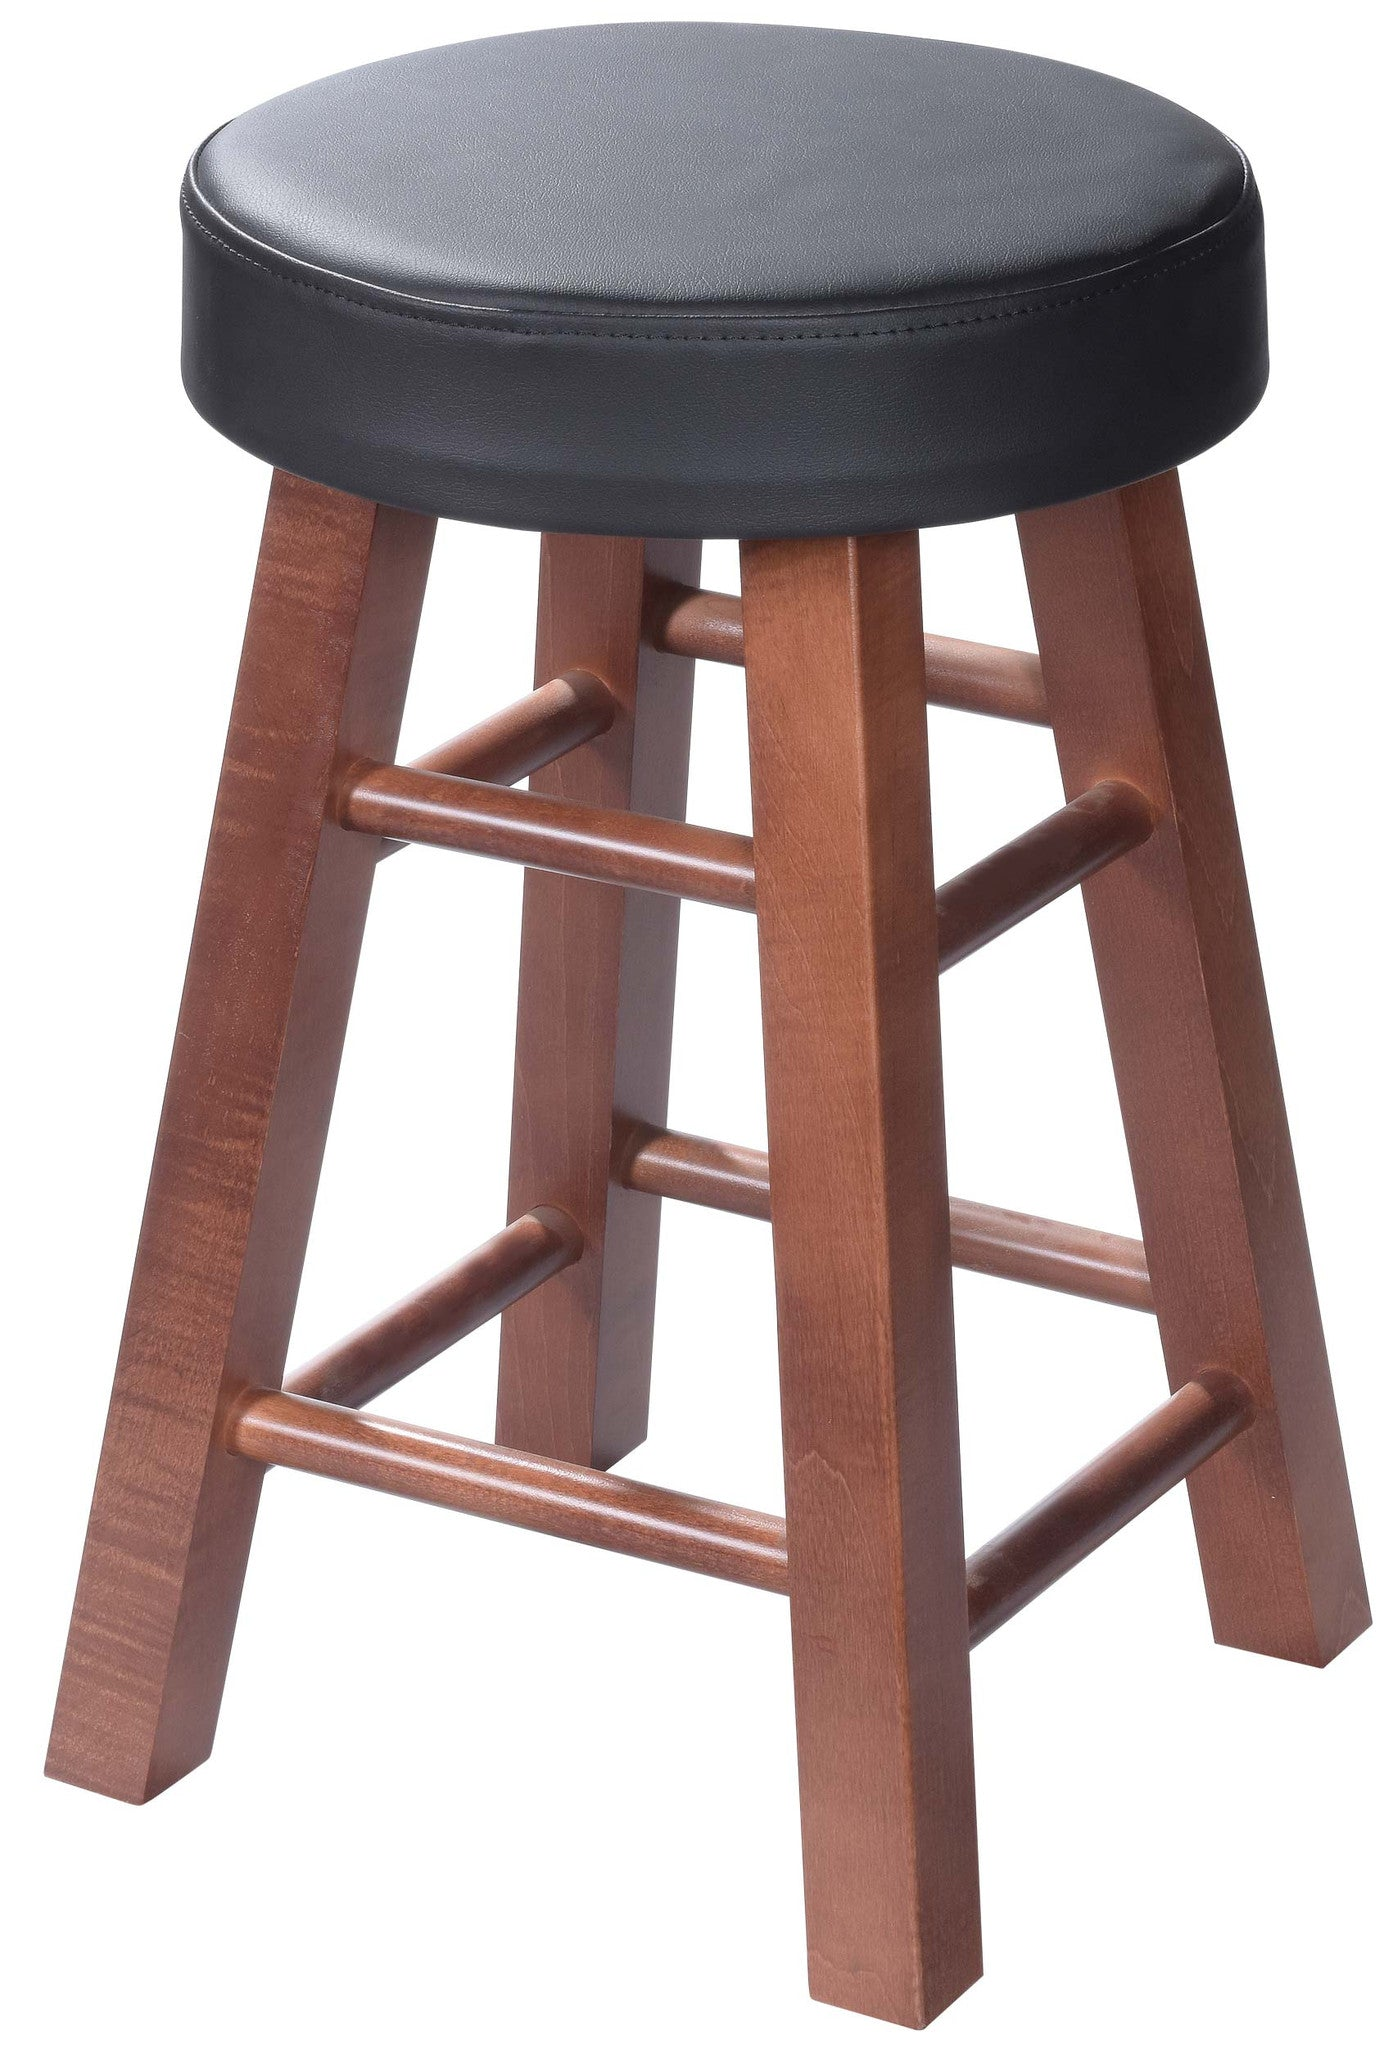 Solid Hardwood Locker Stools All Wood Products